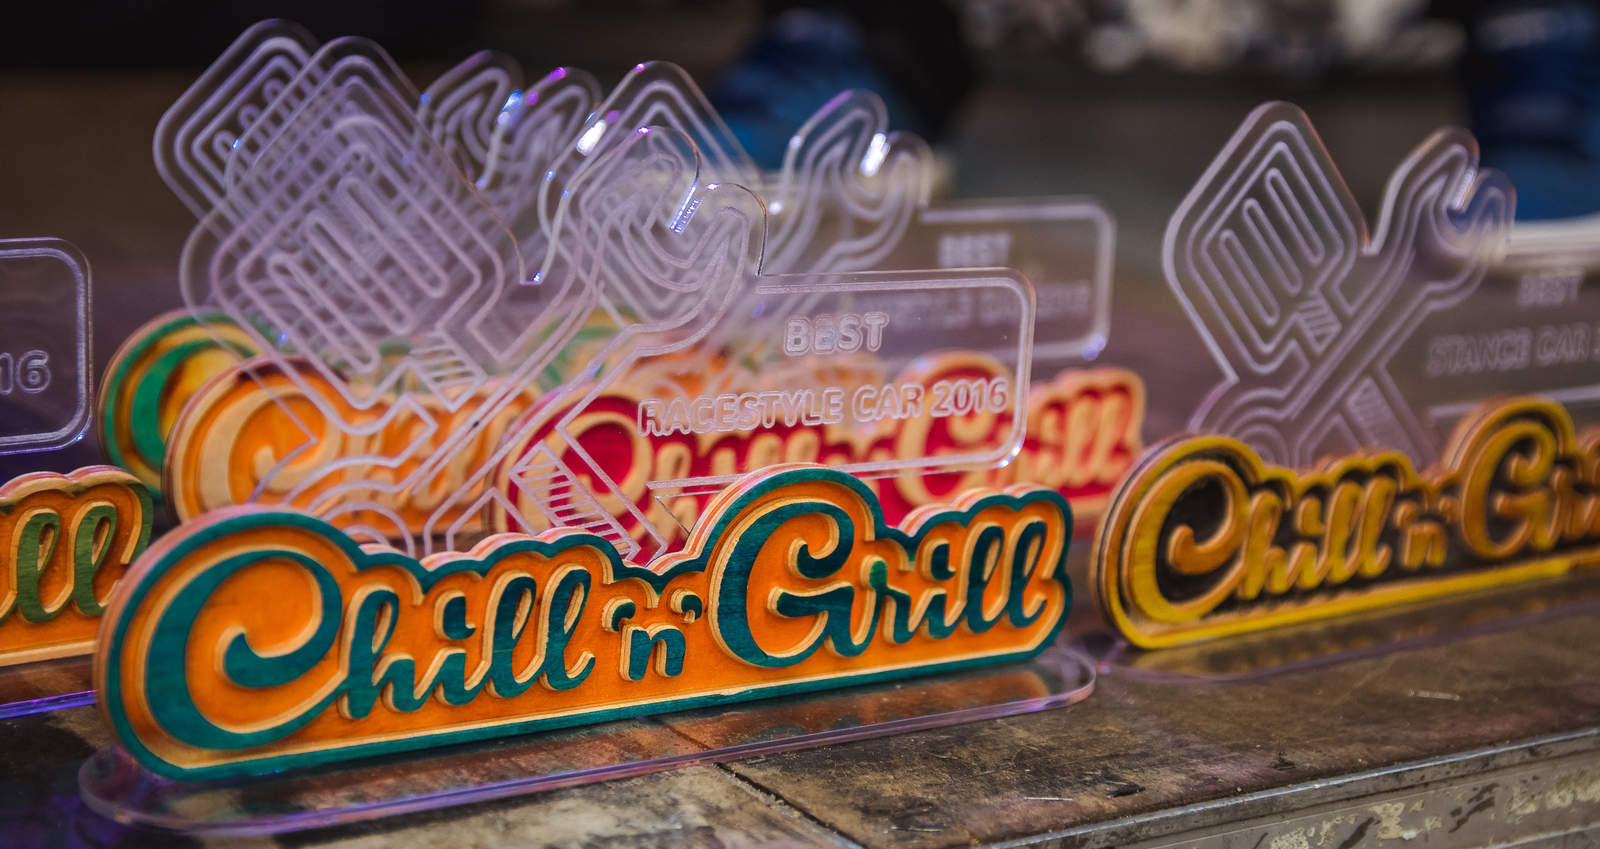 Chill'n'grill Trophies